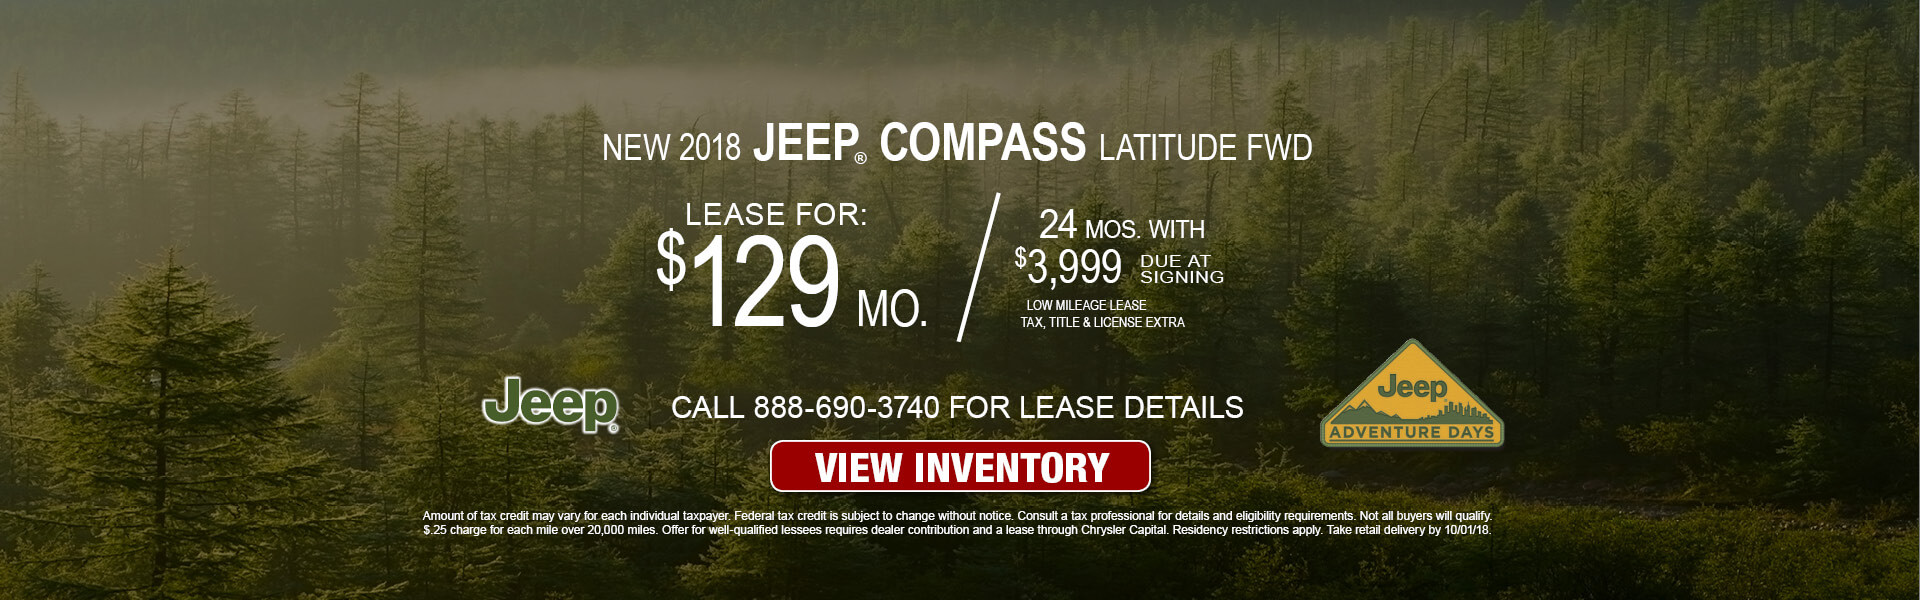 Jeep Compass $129 Lease